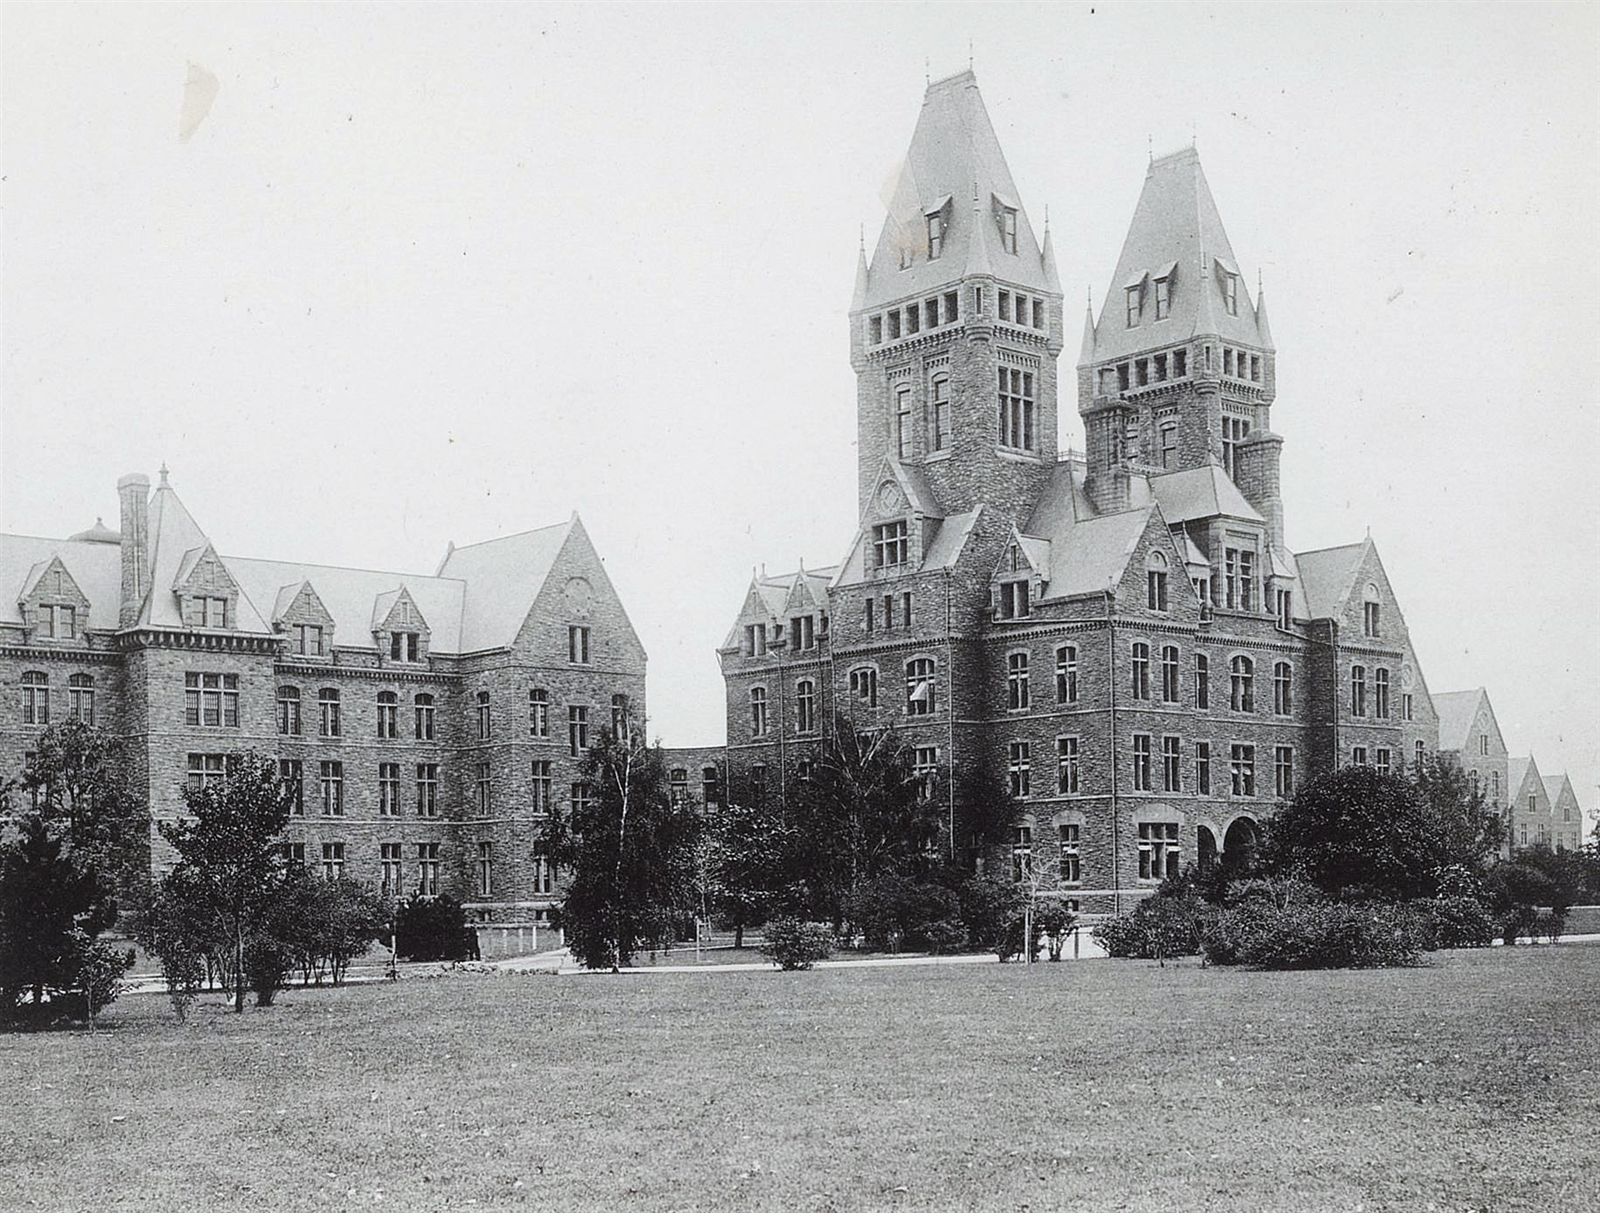 Then: The H.H. Richardson Complex, known as the Buffalo State Asylum when it opened in 1880, is one of Buffalo's most architecturally important structures. It was designed by architect Henry Hobson Richardson in the Richardsonian Romanesque style. Frederick Law Olmsted and Calvert Vaux designed the grounds. It was operated as a mental health treatment facility, but through the 20th century, its services were gradually reduced until patients were totally moved out in the 1970s. The complex was abandoned until reuse construction began in the 2000s.